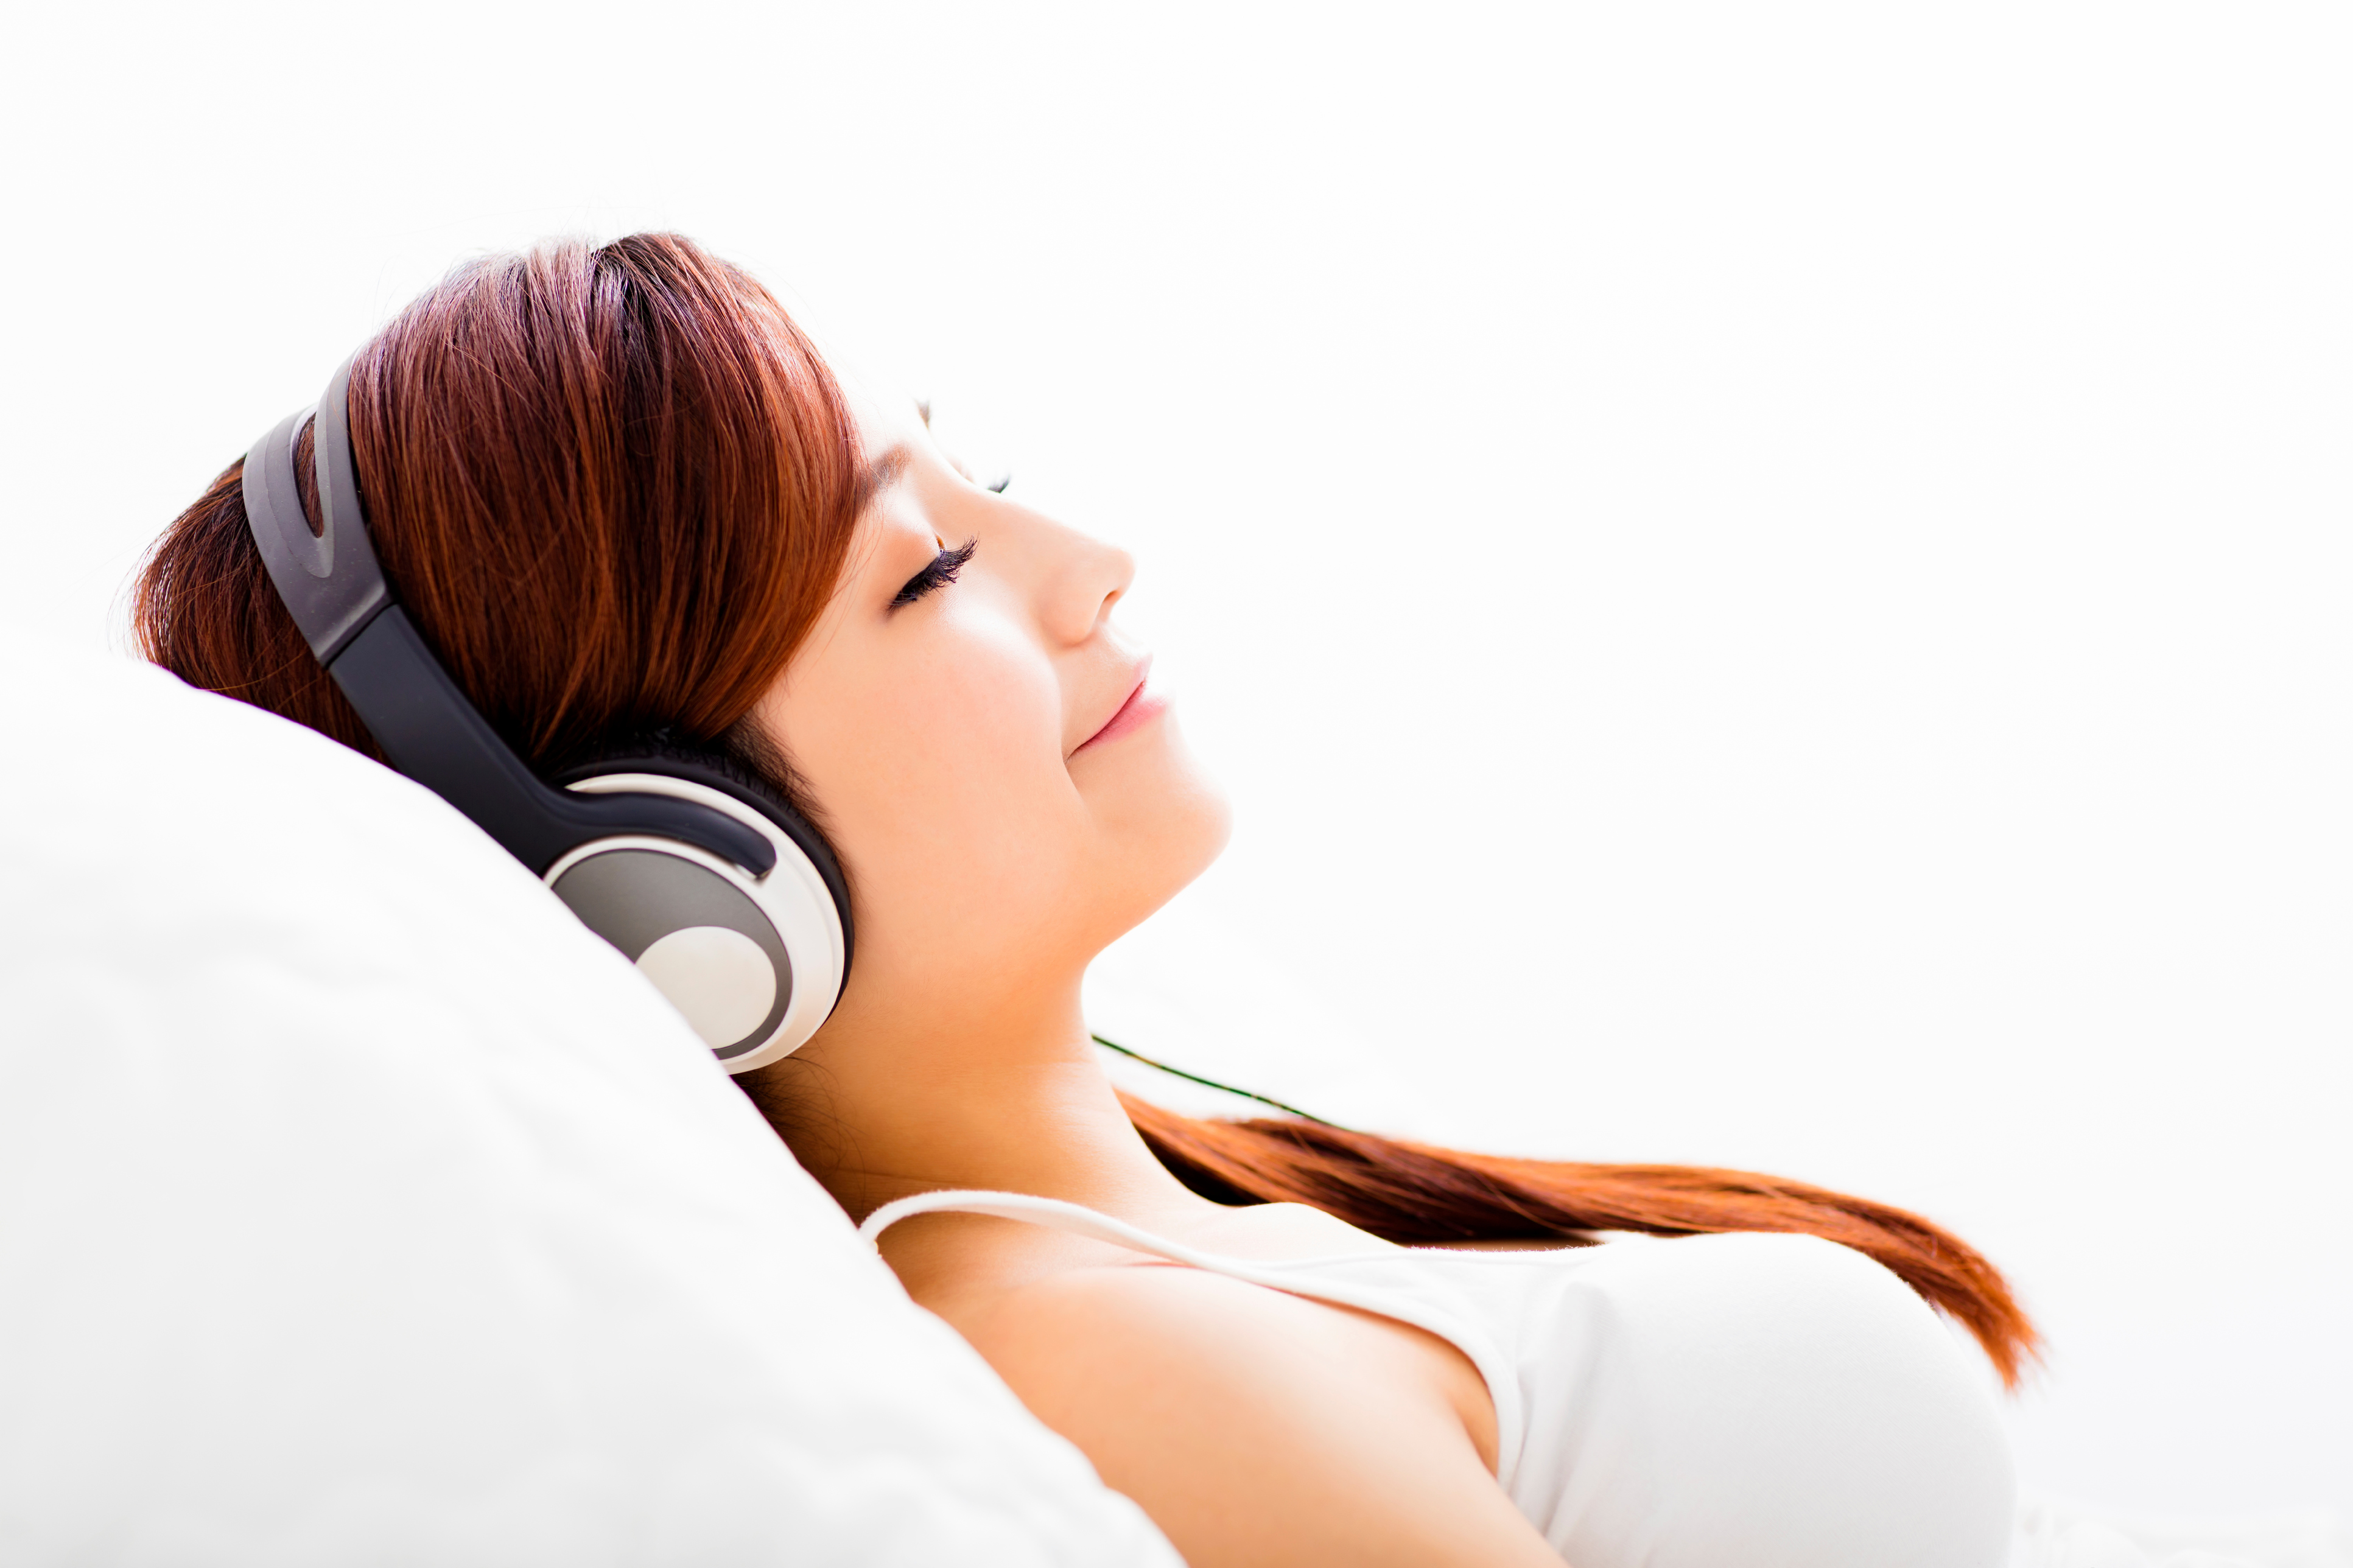 Relaxed young woman with headphones listening to music.